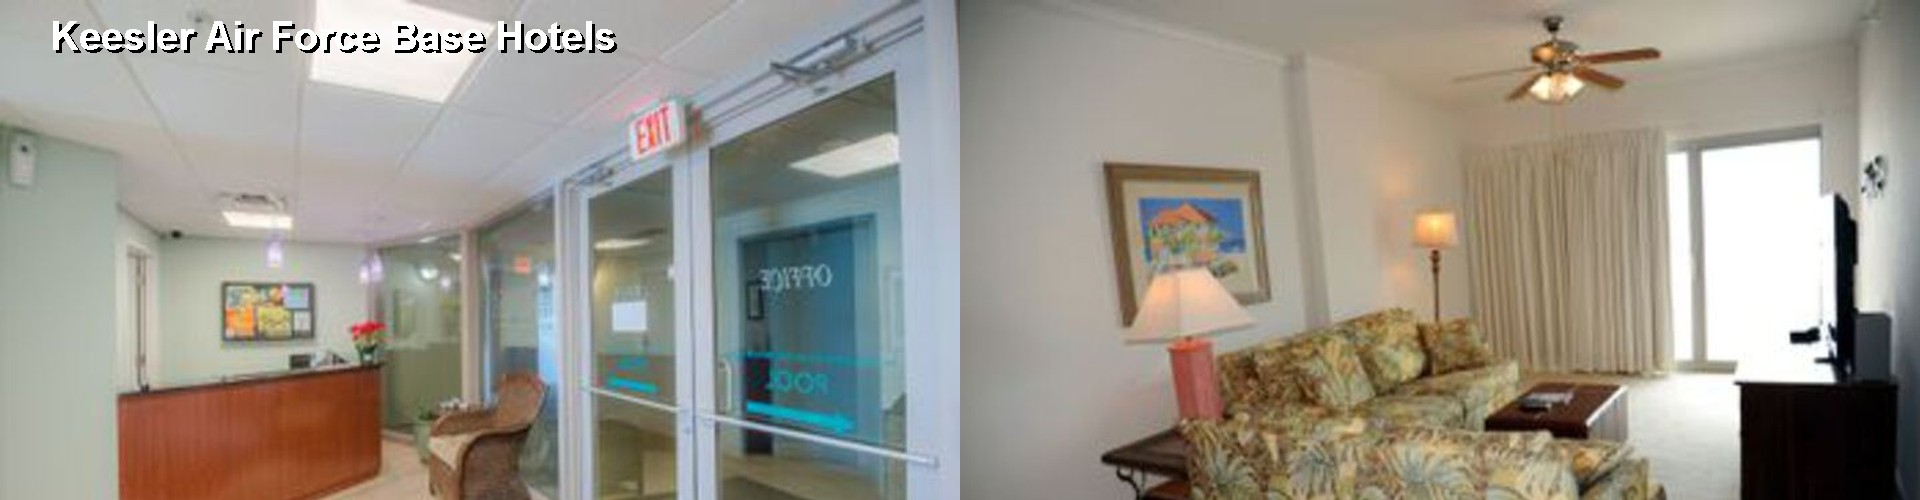 55 Hotels Near Keesler Air Force Base In Biloxi Ms